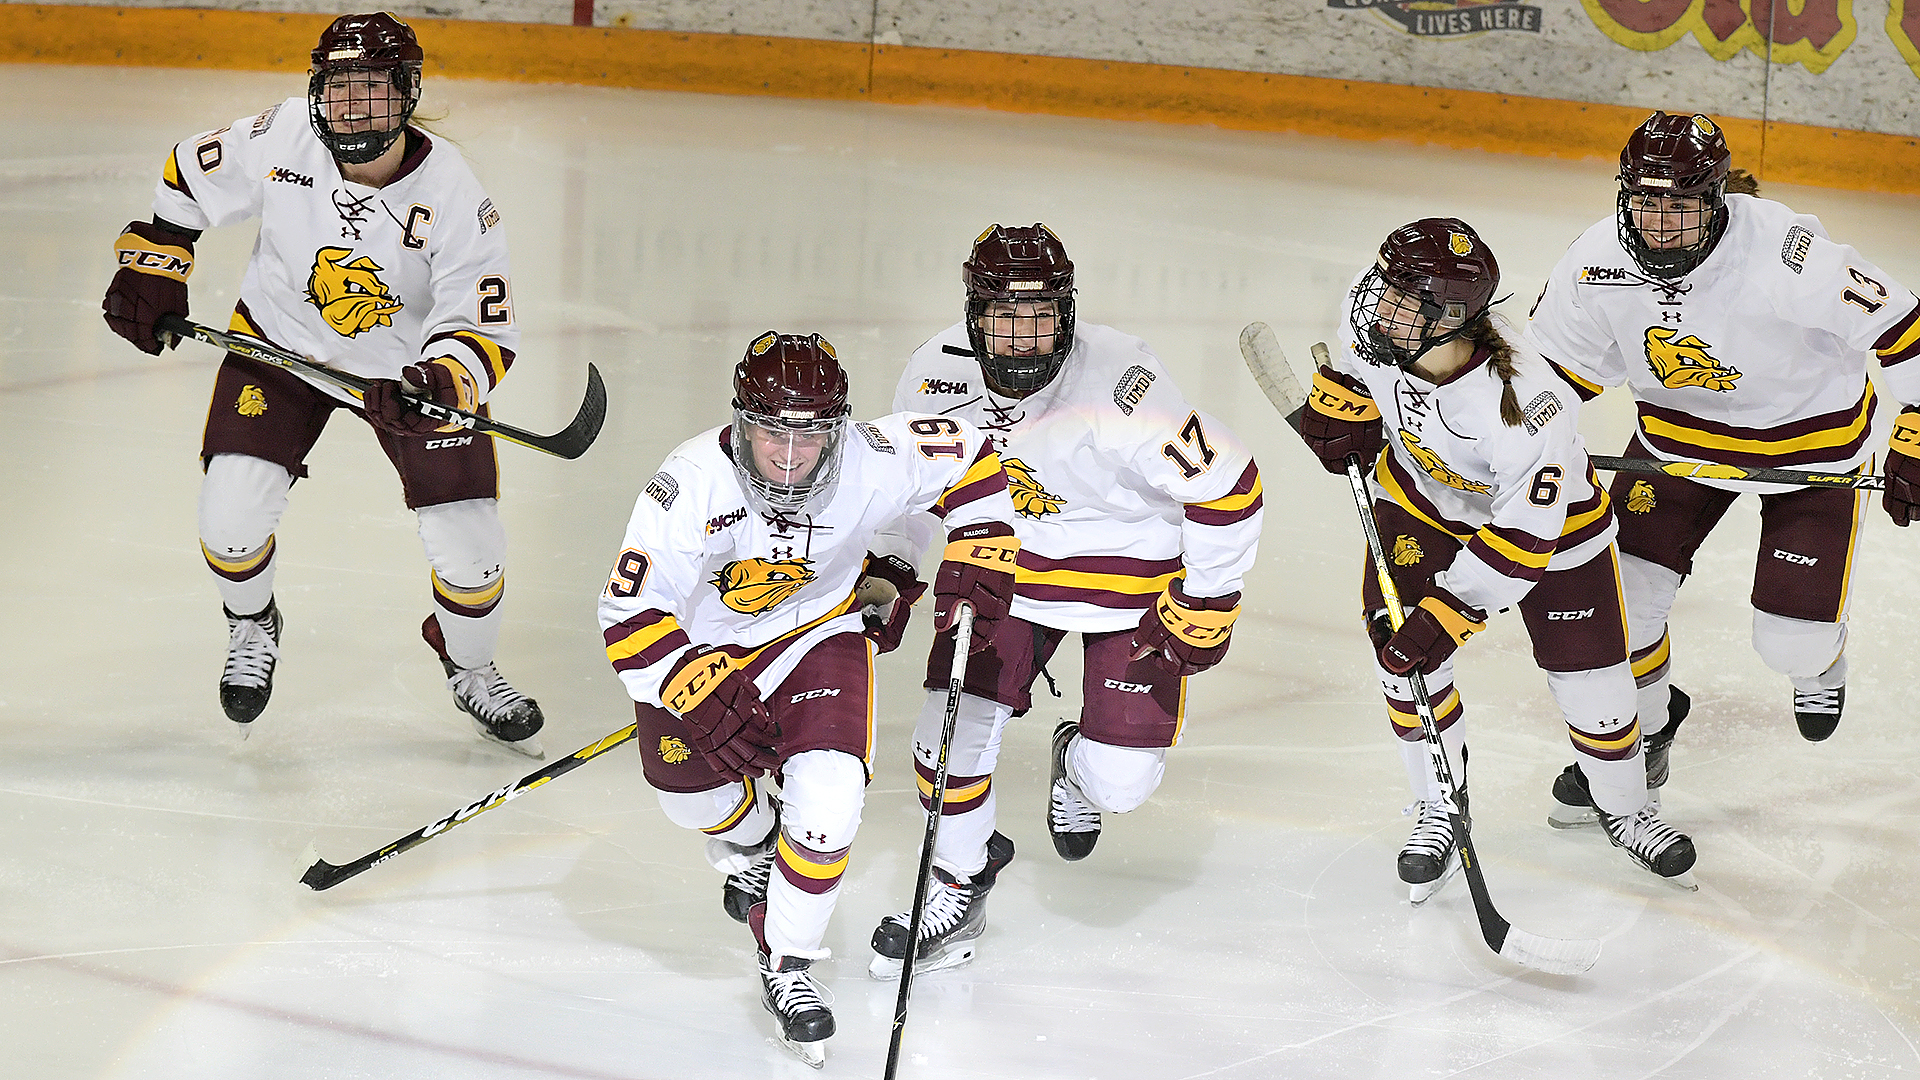 Bulldogs Will Usher In 2019 At The Minnesota Cup With No 2